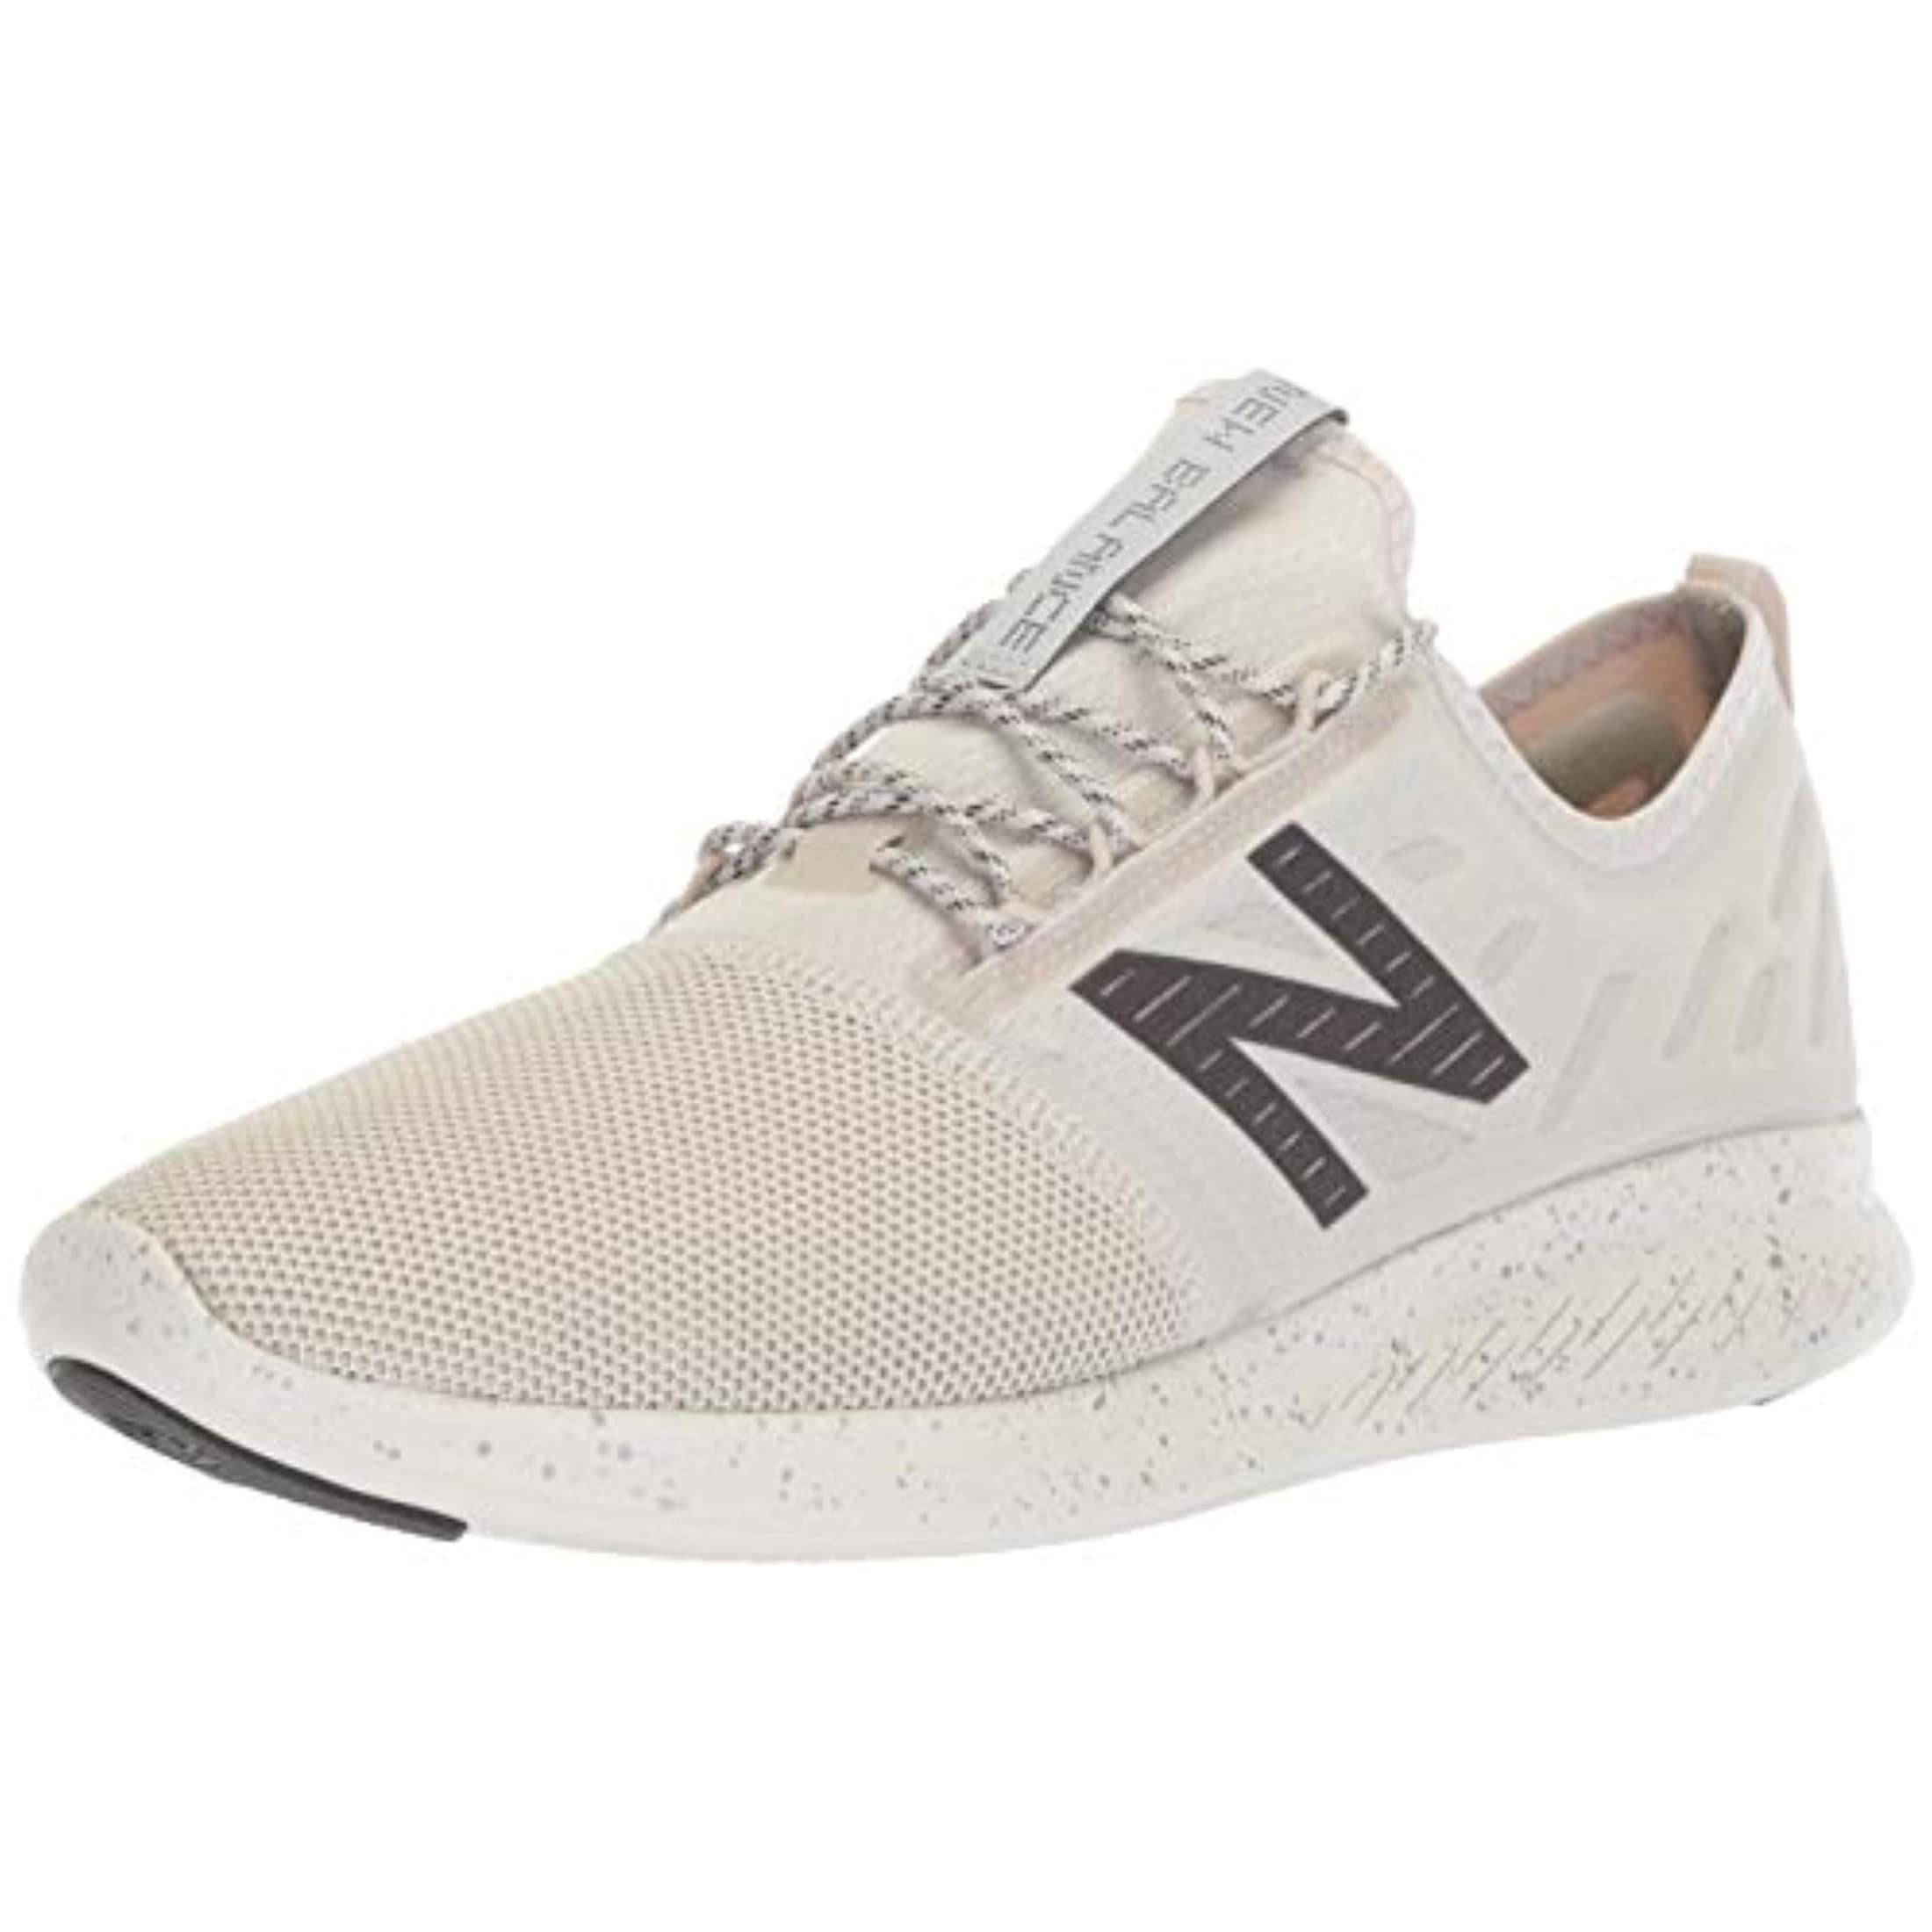 NEW BALANCE MENS COAST V4 FUELCORE RUNNING SHOES